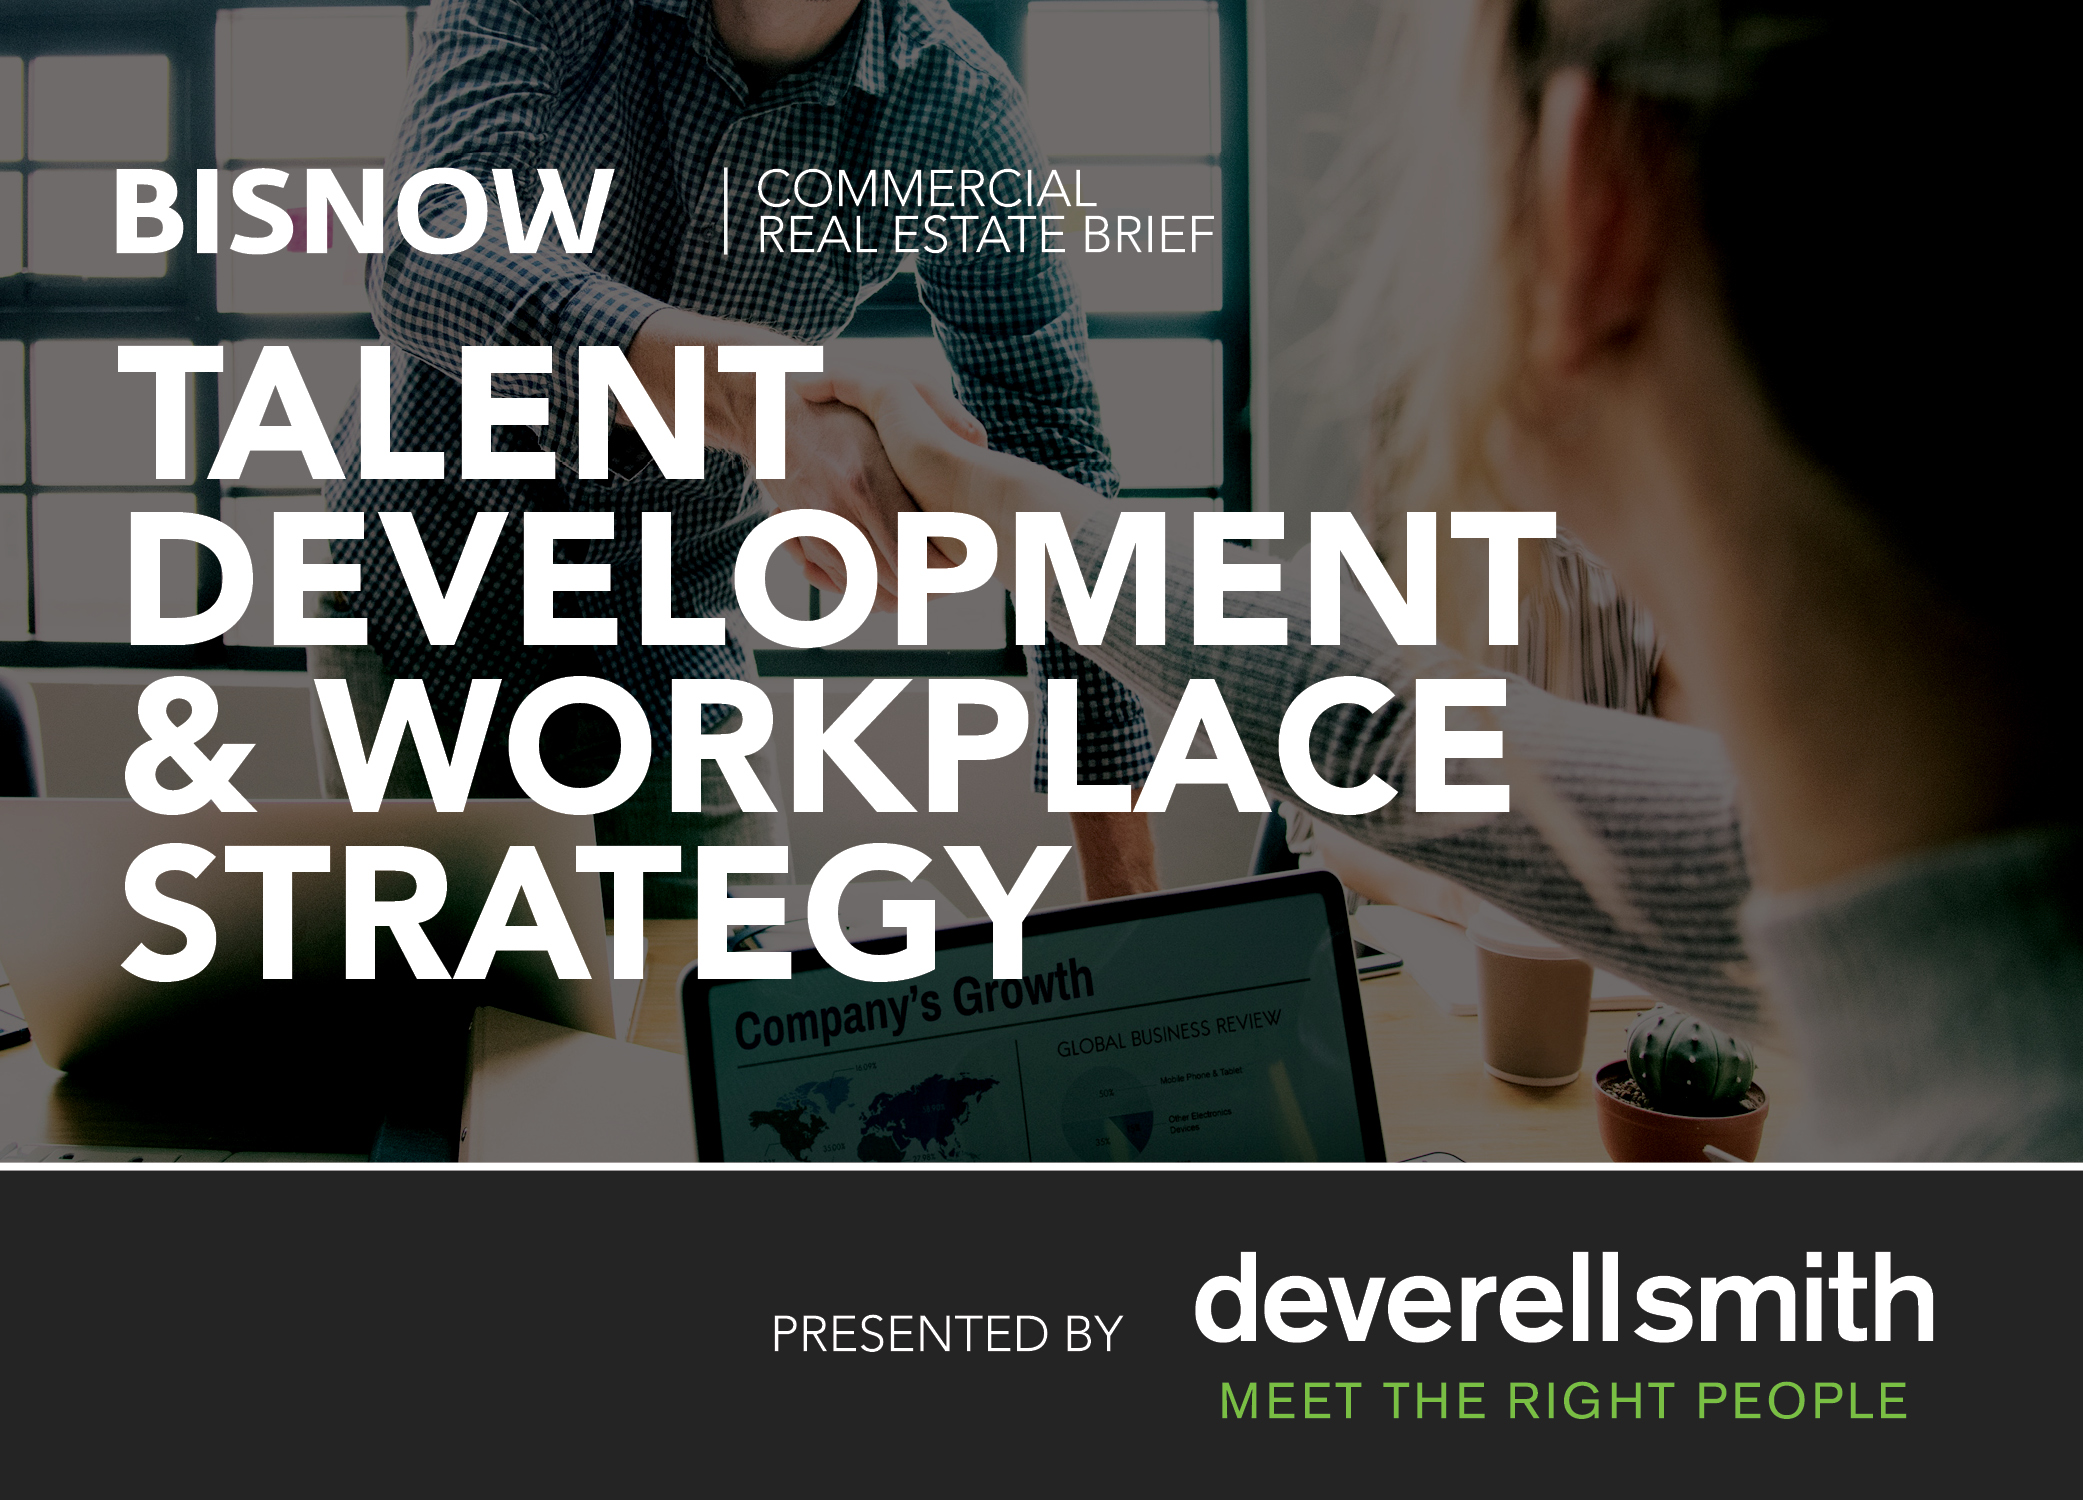 Bisnow Morning Brief Talent Development & Workplace Strategy